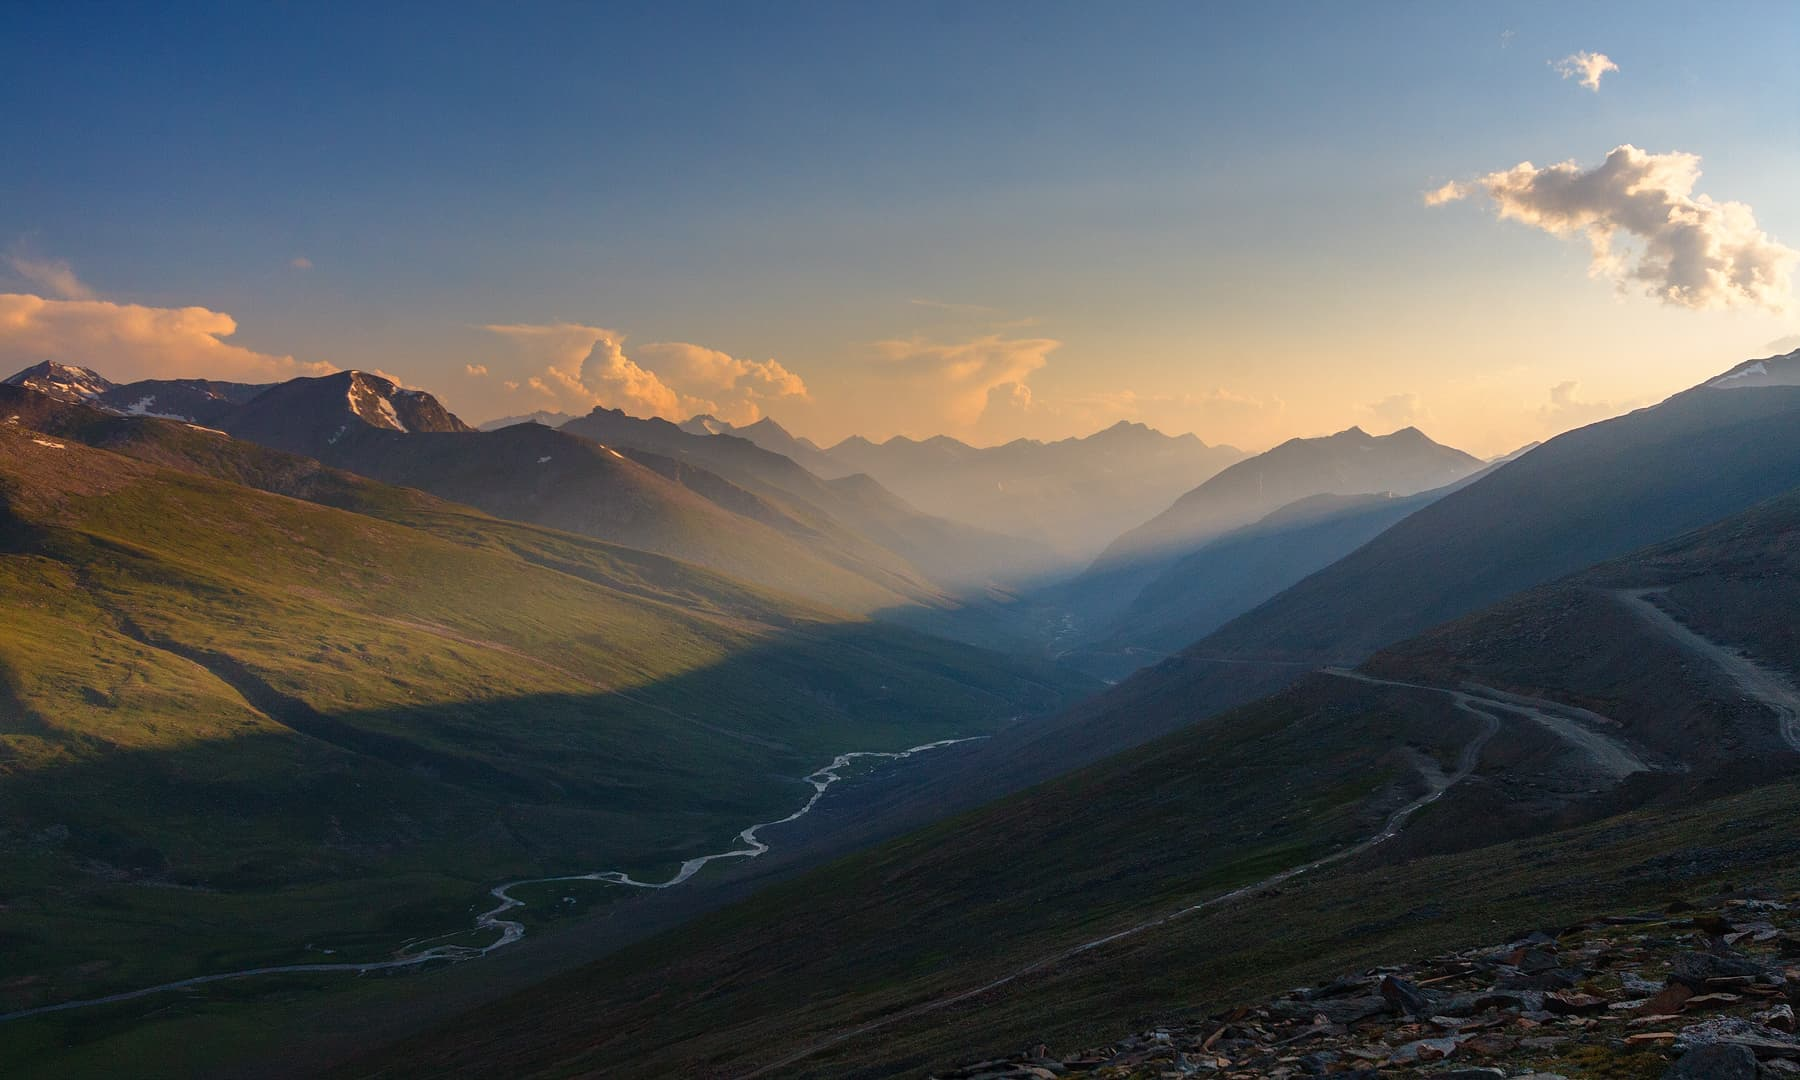 An evening in Babusar.